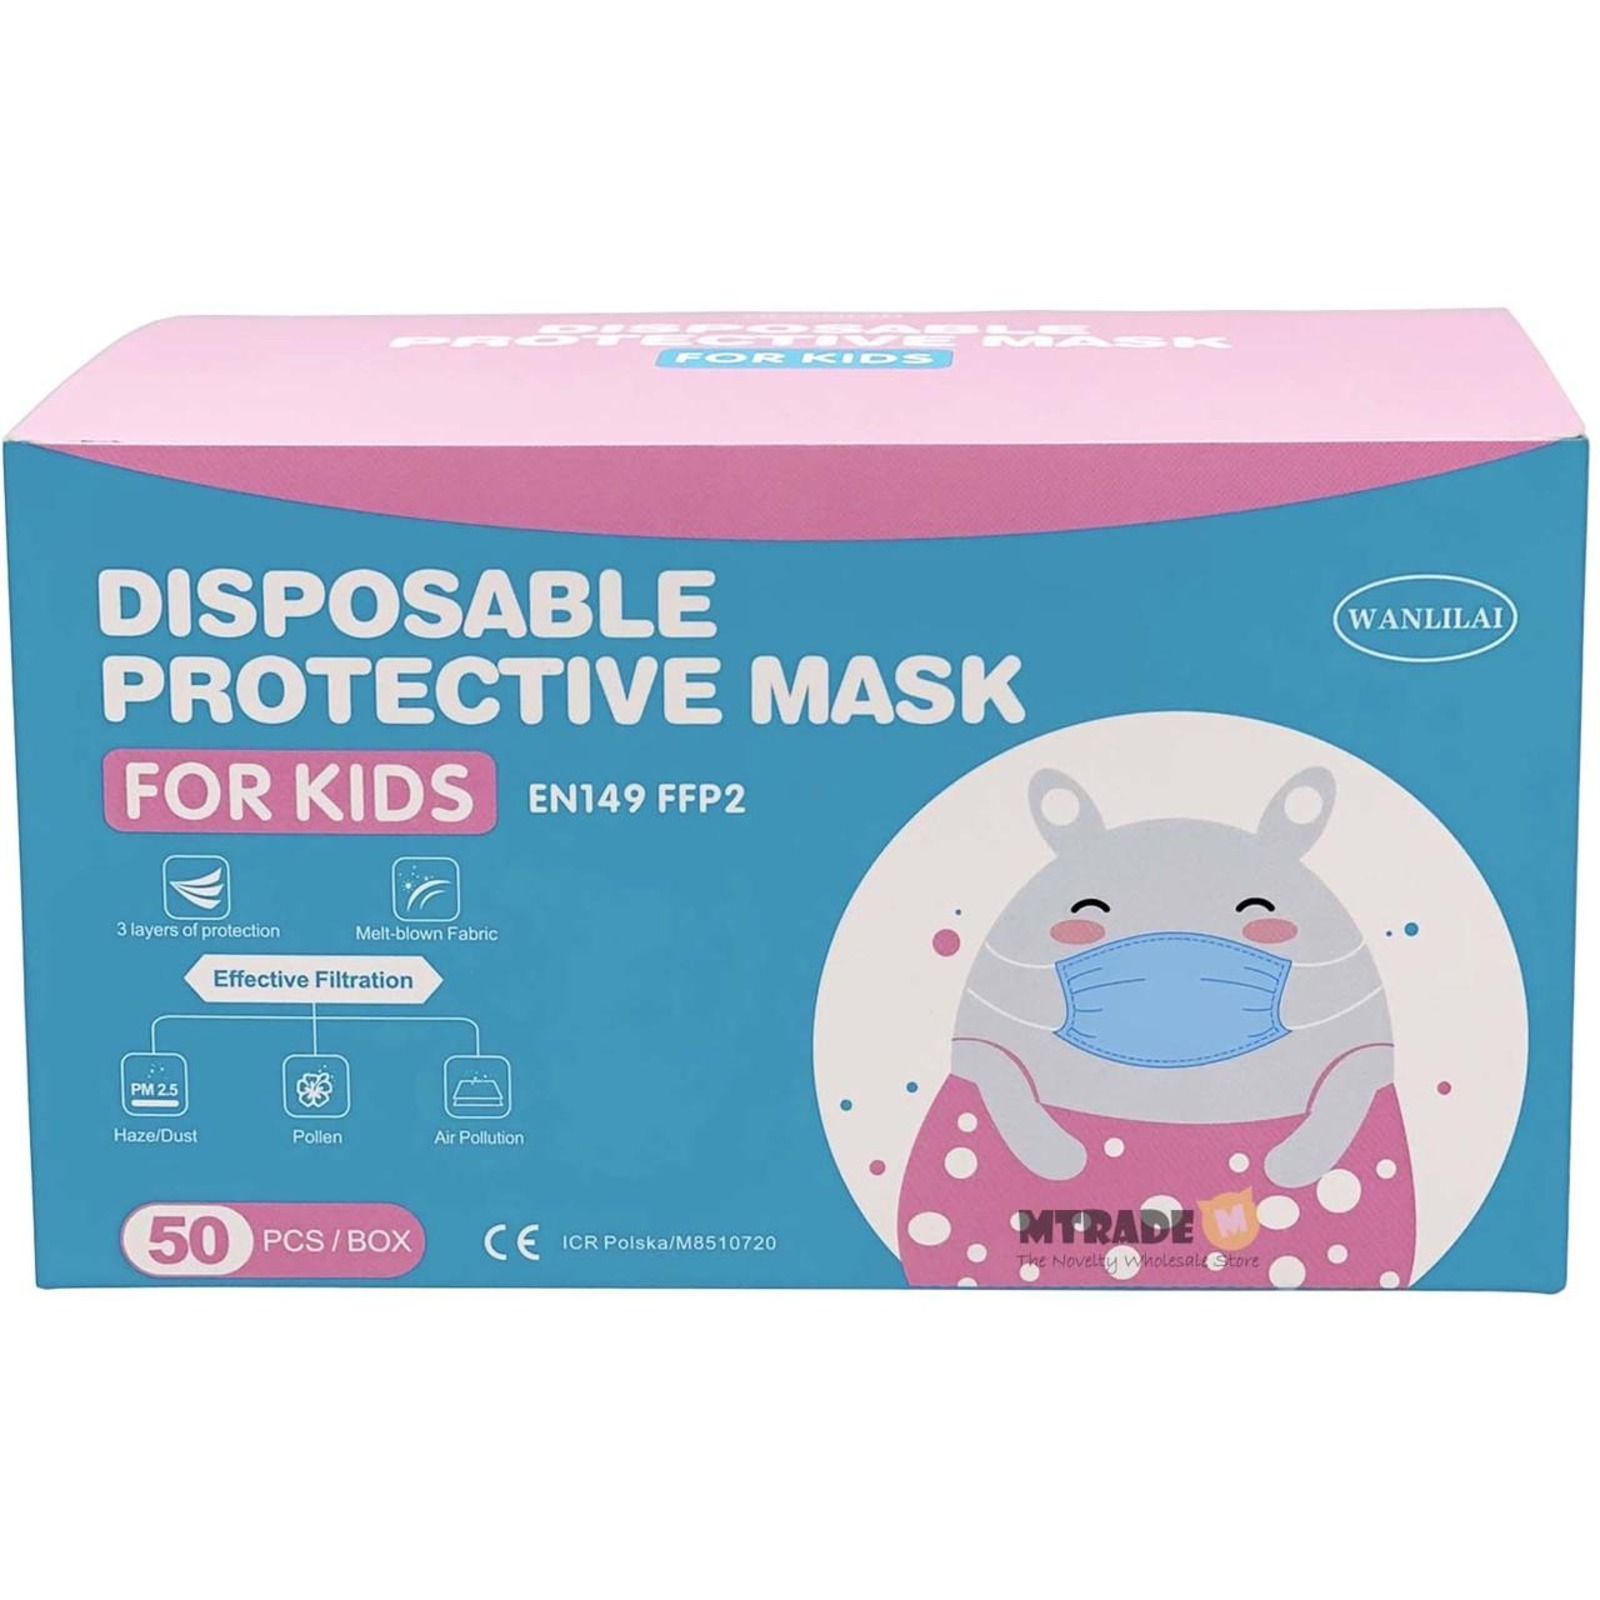 MTRADE 3-Layer Children Disposable Face Mask